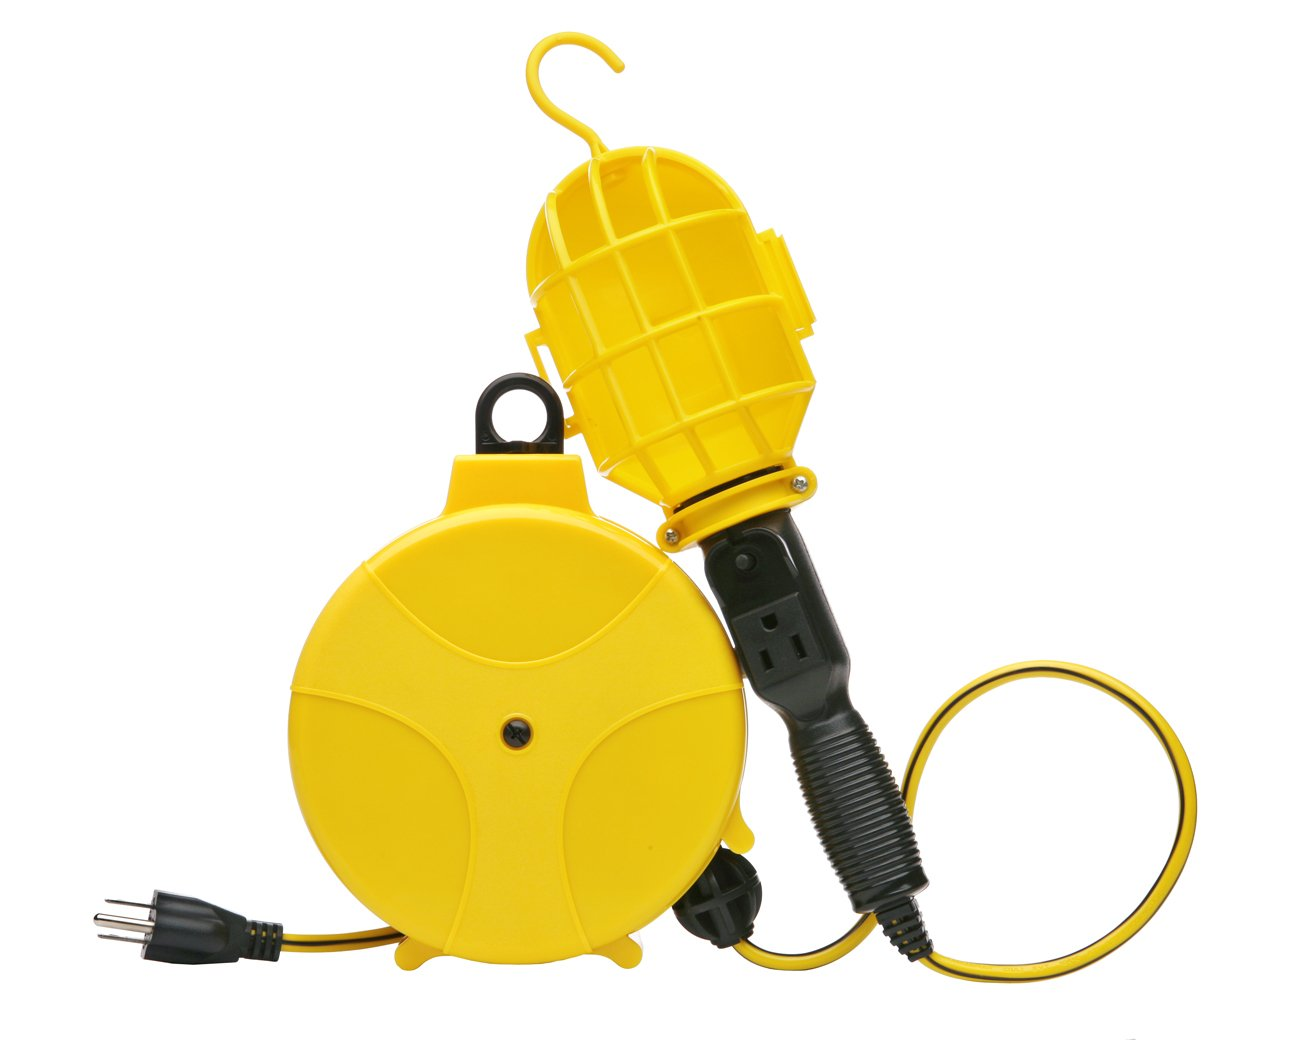 Designers Edge E216 Plastic Cord Reel with Handheld Work Lights, 20-Foot by Designers Edge